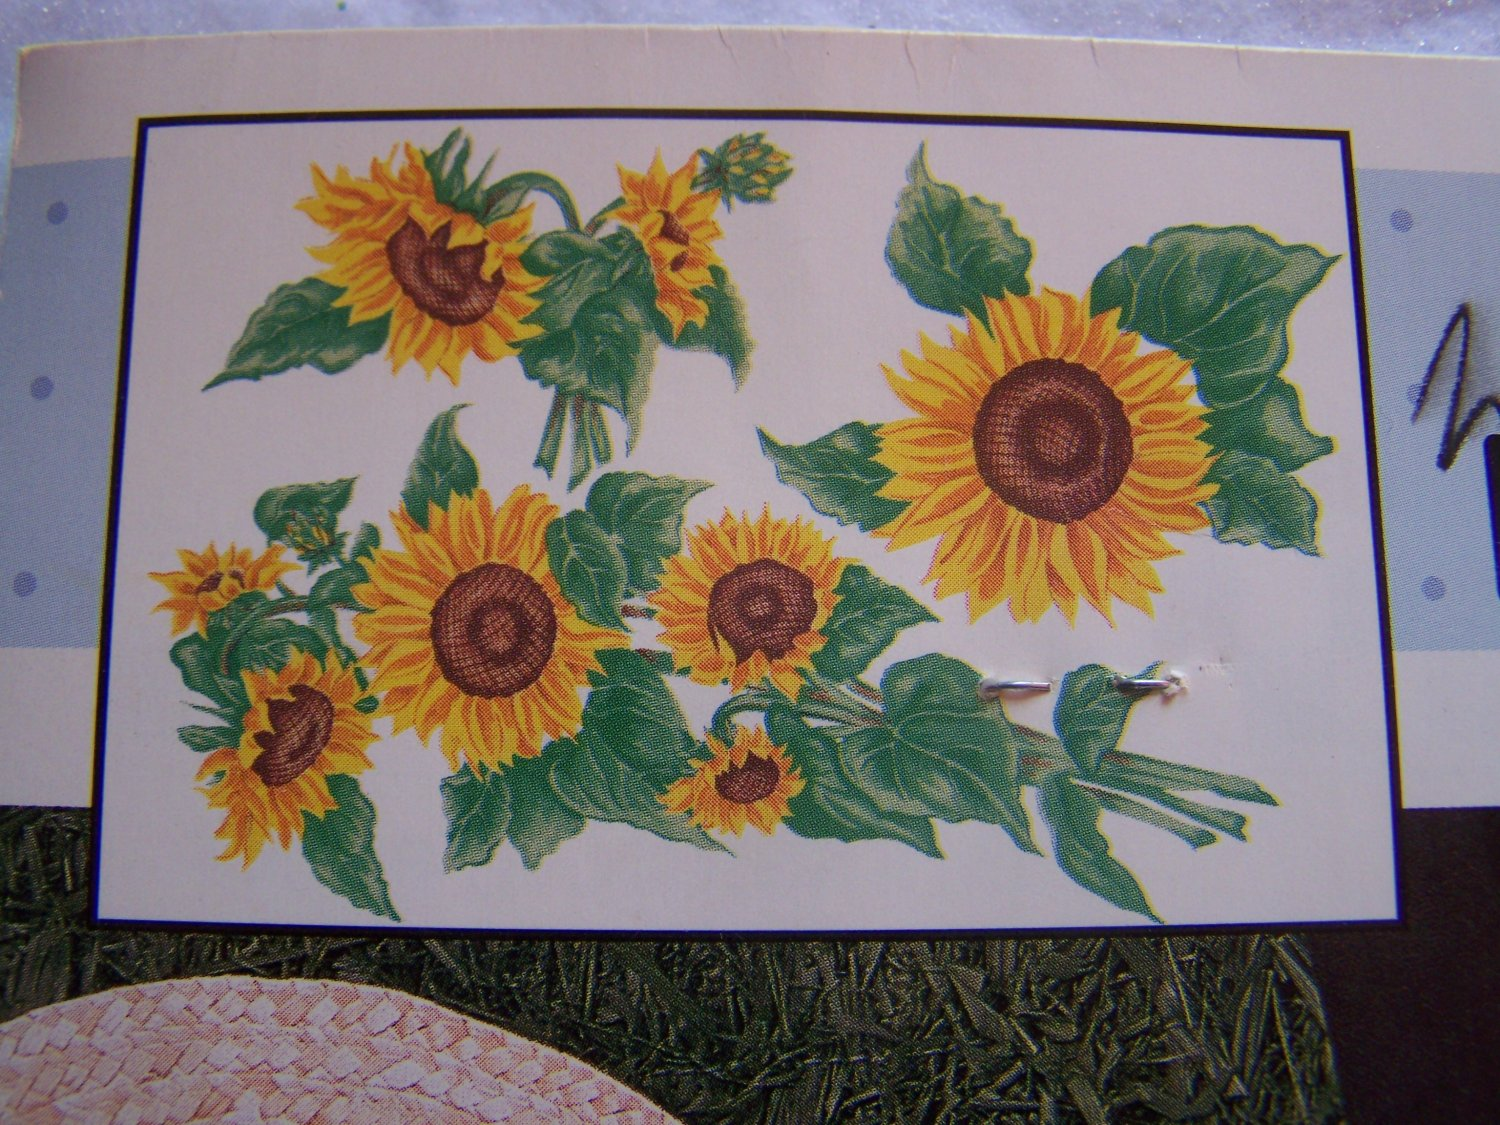 New Daisy Kingdom Fabric No Sew Applique Sunflower # 6282